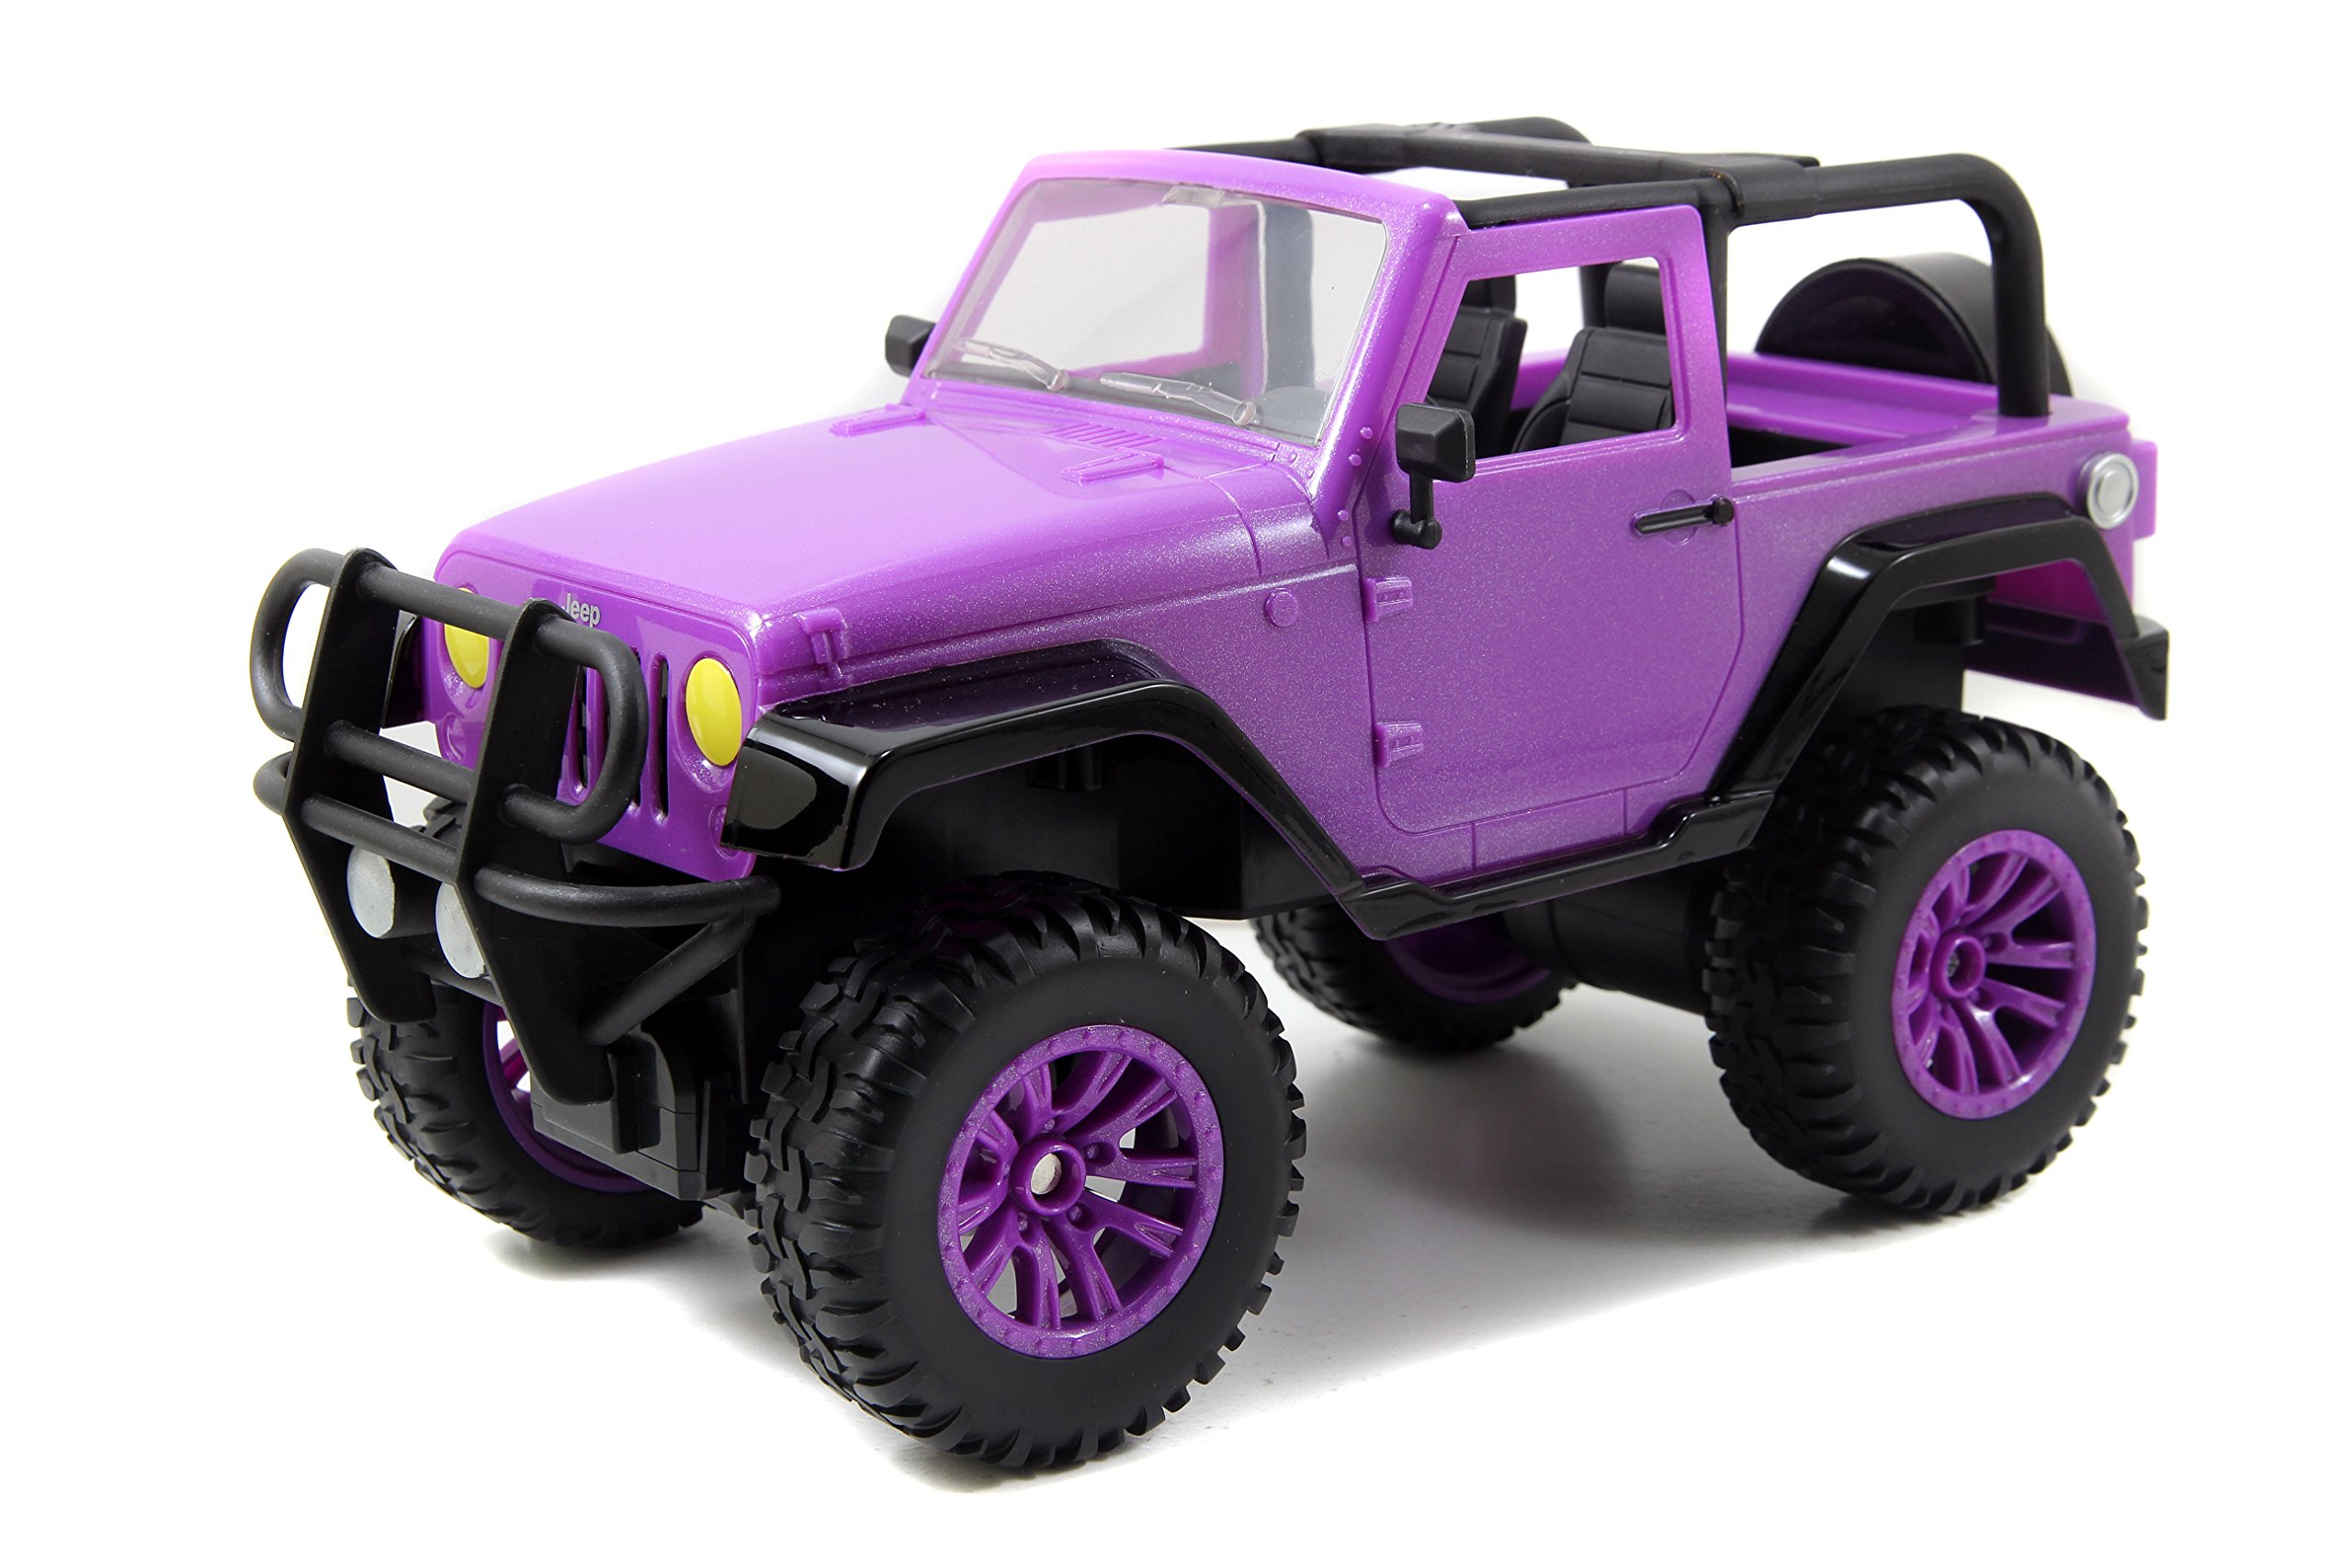 Jada Toys GIRLMAZING Big Foot Jeep R/C Vehicle (1:16 Scale), Purple by Jada Toys (Image #3)